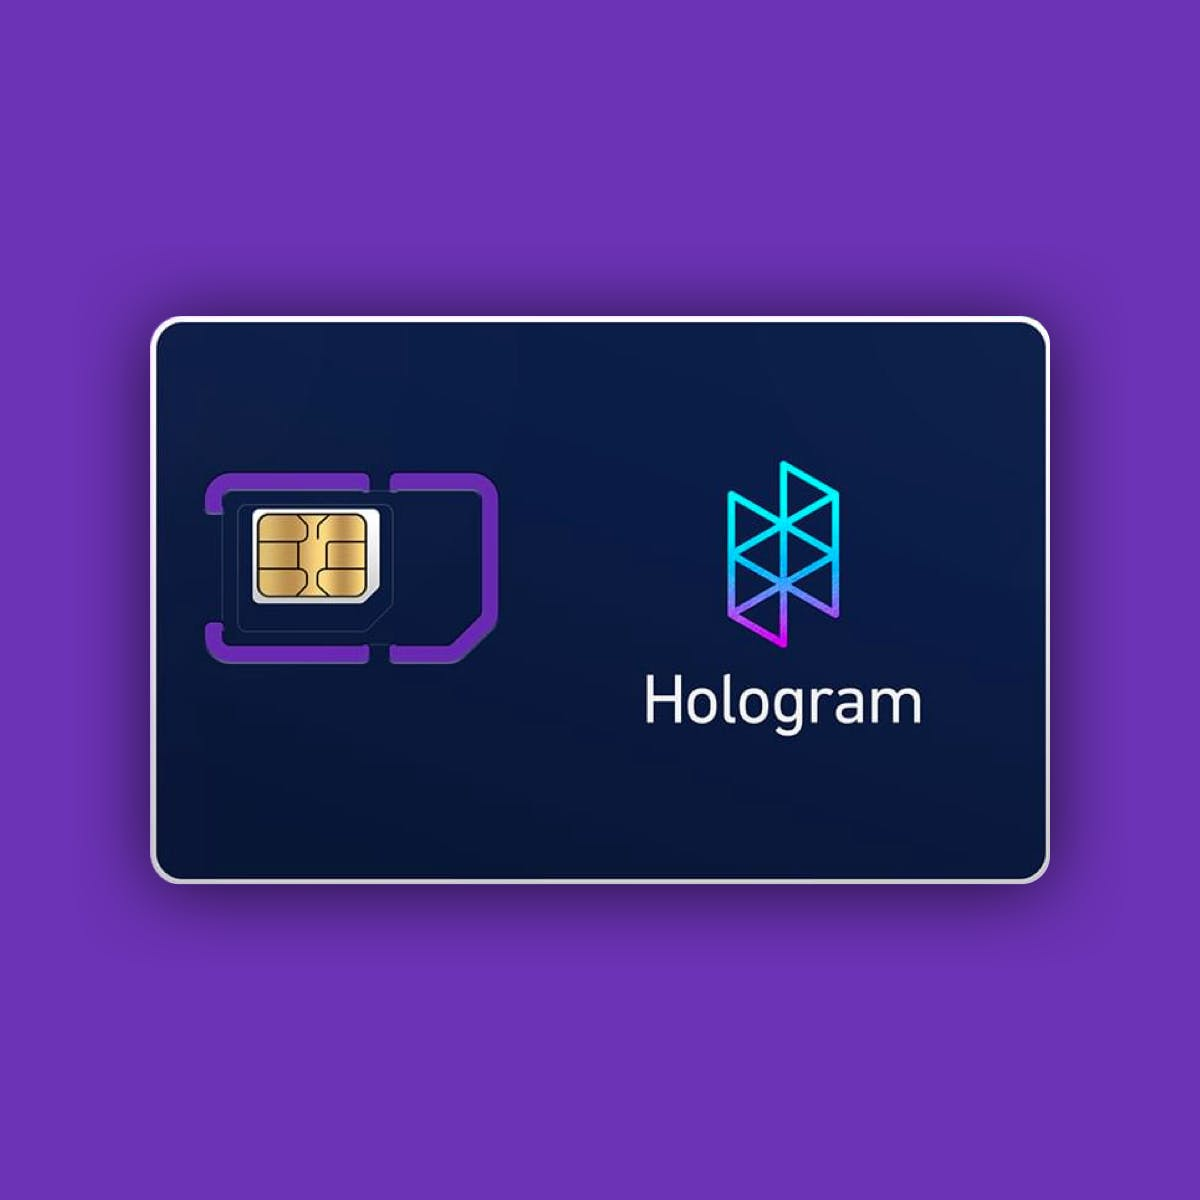 Hologram%20dash